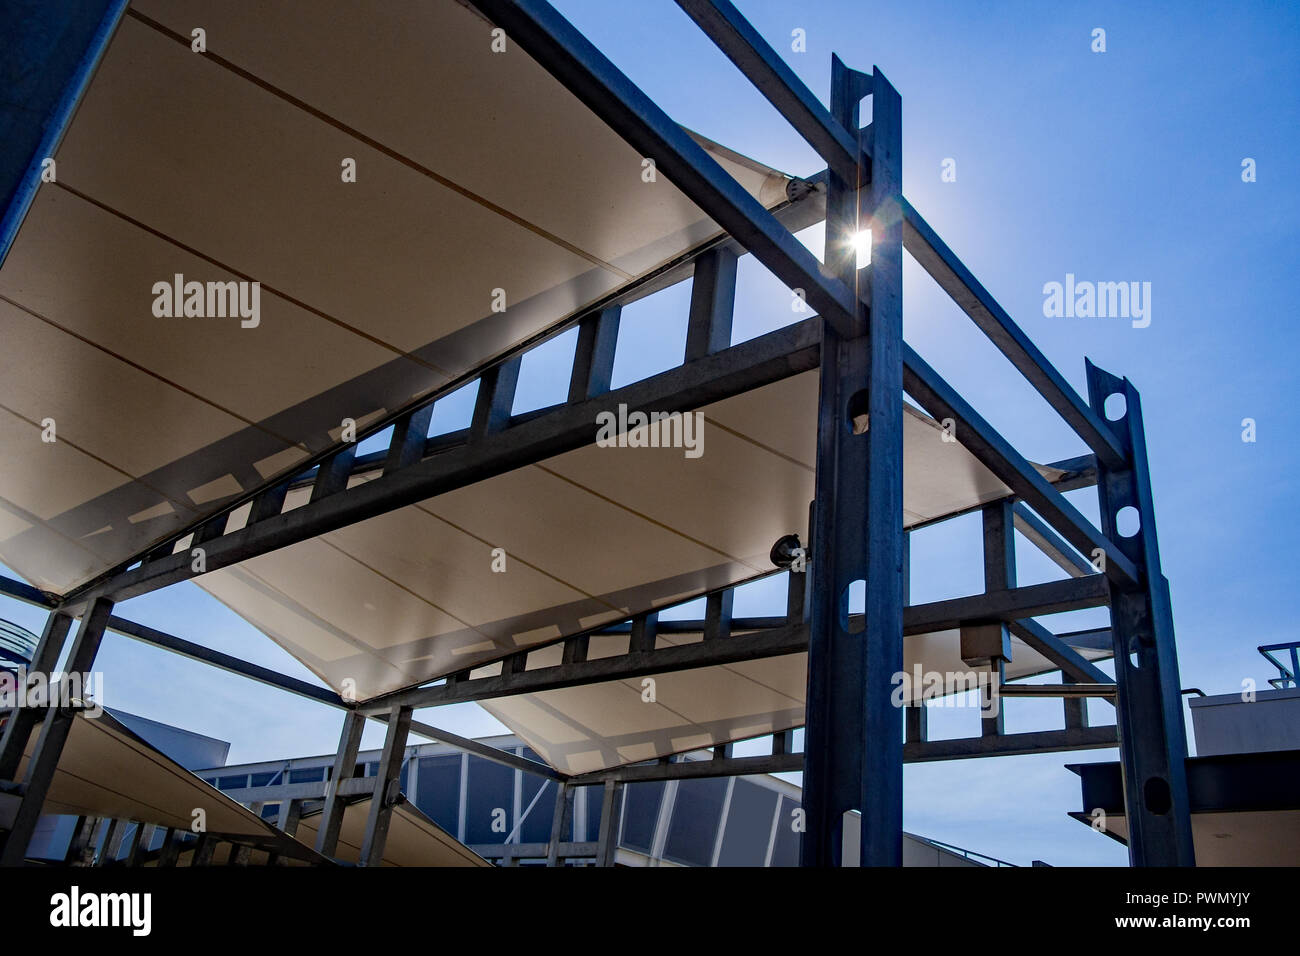 Sail shade pergola made of galvanized steel and white canvas tall standing strong structure against the blue sky Stock Photo